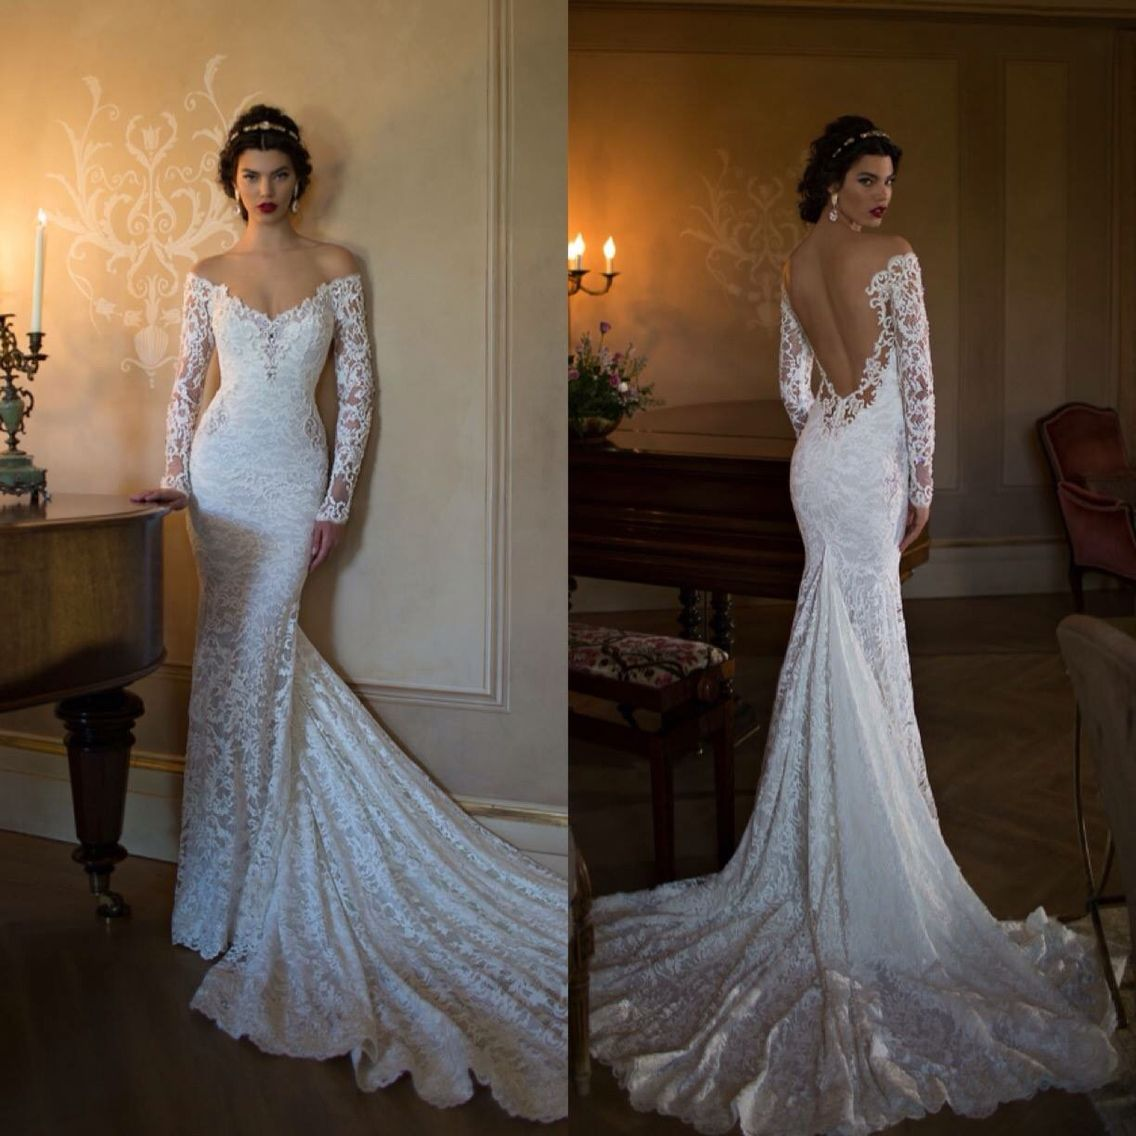 If i ever say i do it will be in this dress lol kostüme und